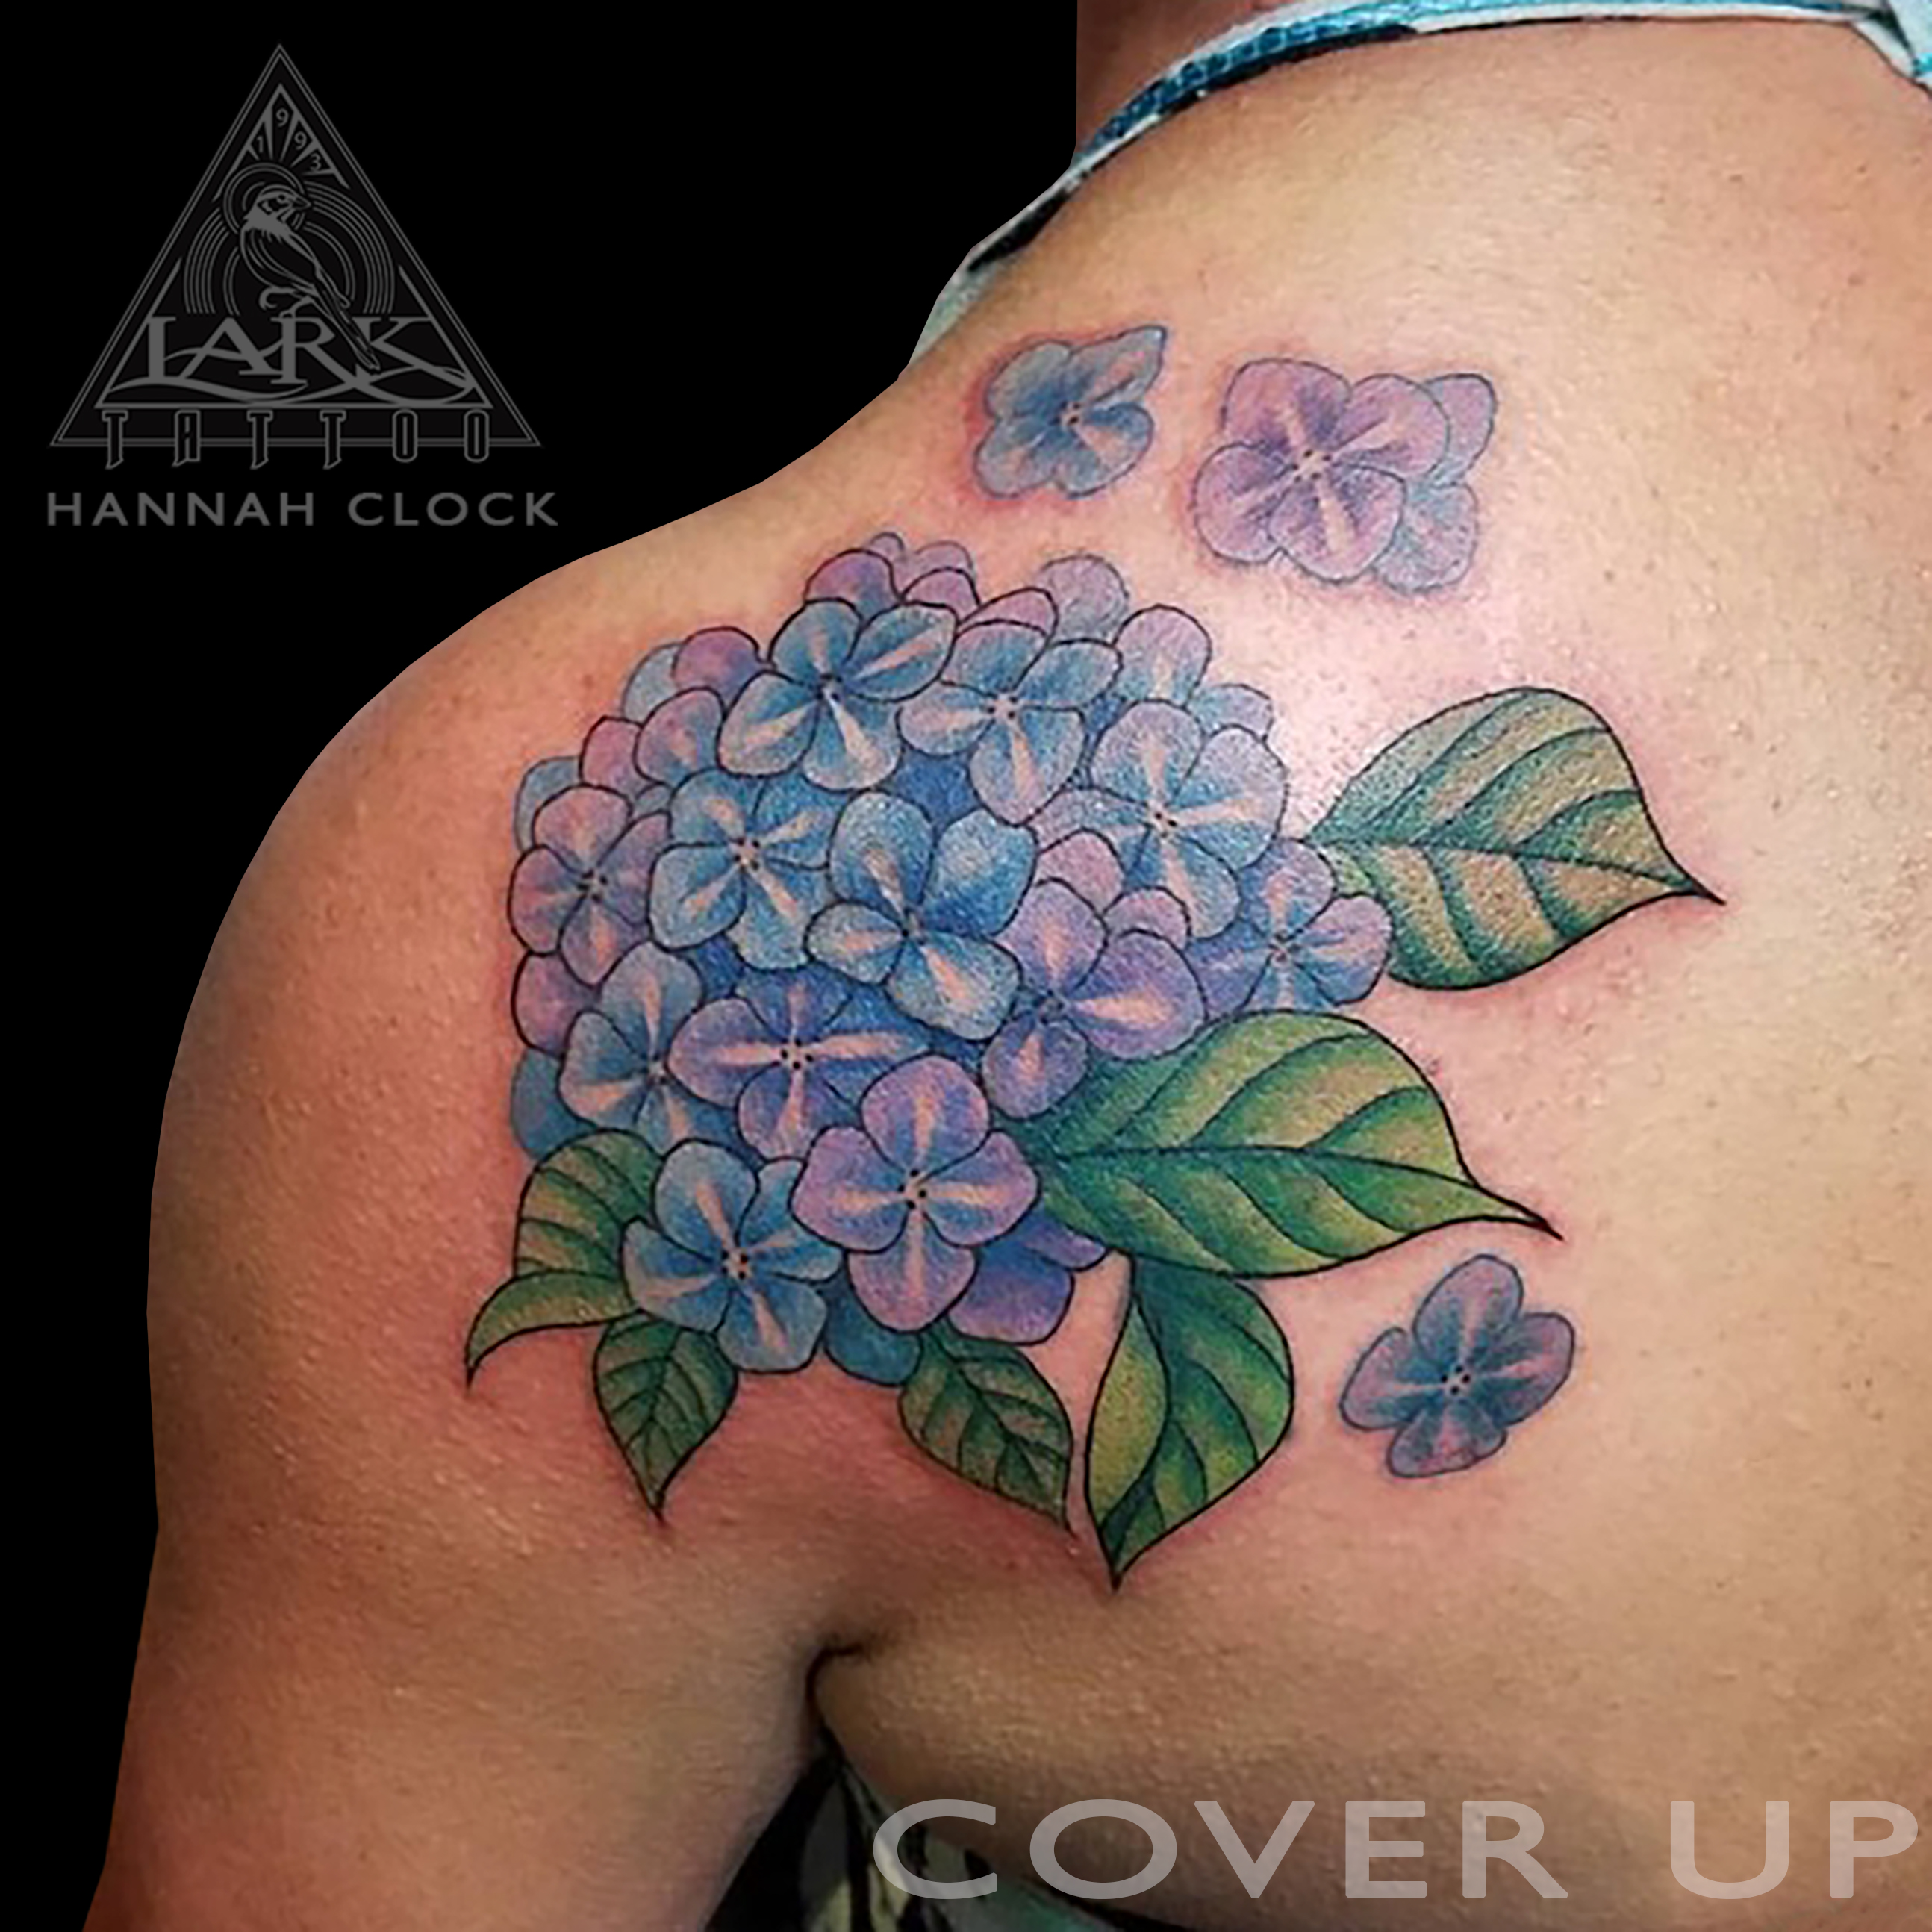 #hydrangea #hydrangeatattoo #coverup #coveruptattoo #flower #flowertattoo #colortattoo #ladytattooer #femaleartist #femaletattooer #femaletattooartist #tattoo #tattoos #tat #tats #tatts #tatted #tattedup #tattoist #tattooed #inked #inkedup #ink #tattoooftheday #amazingink #bodyart #tattooig #tattoosofinstagram #instatats #larktattoo #larktattoos #larktattoowestbury #westbury #longisland #NY #NewYork #usa #art